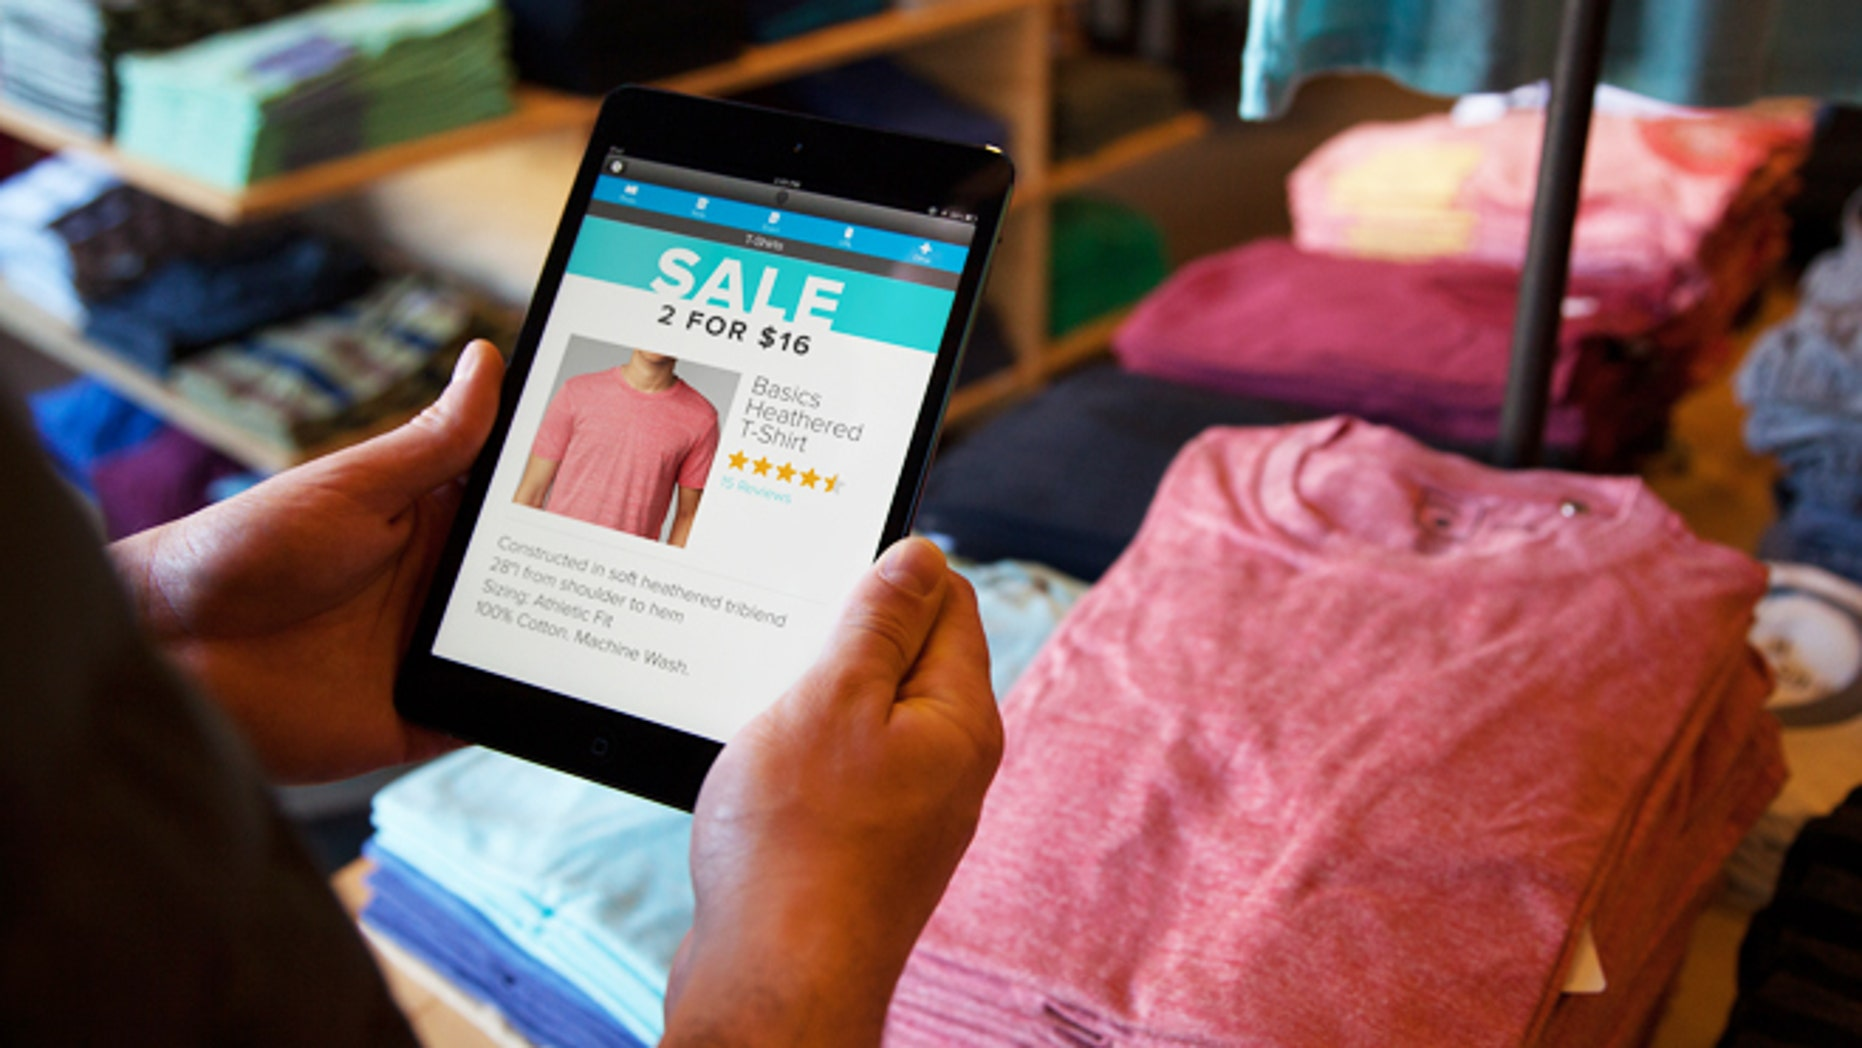 Retailers are experimenting with new ways to track you, using a variety of new technologies like magnetic field detection, Bluetooth Low Energy, sonic pulses, and even transmissions from the in-store lights.